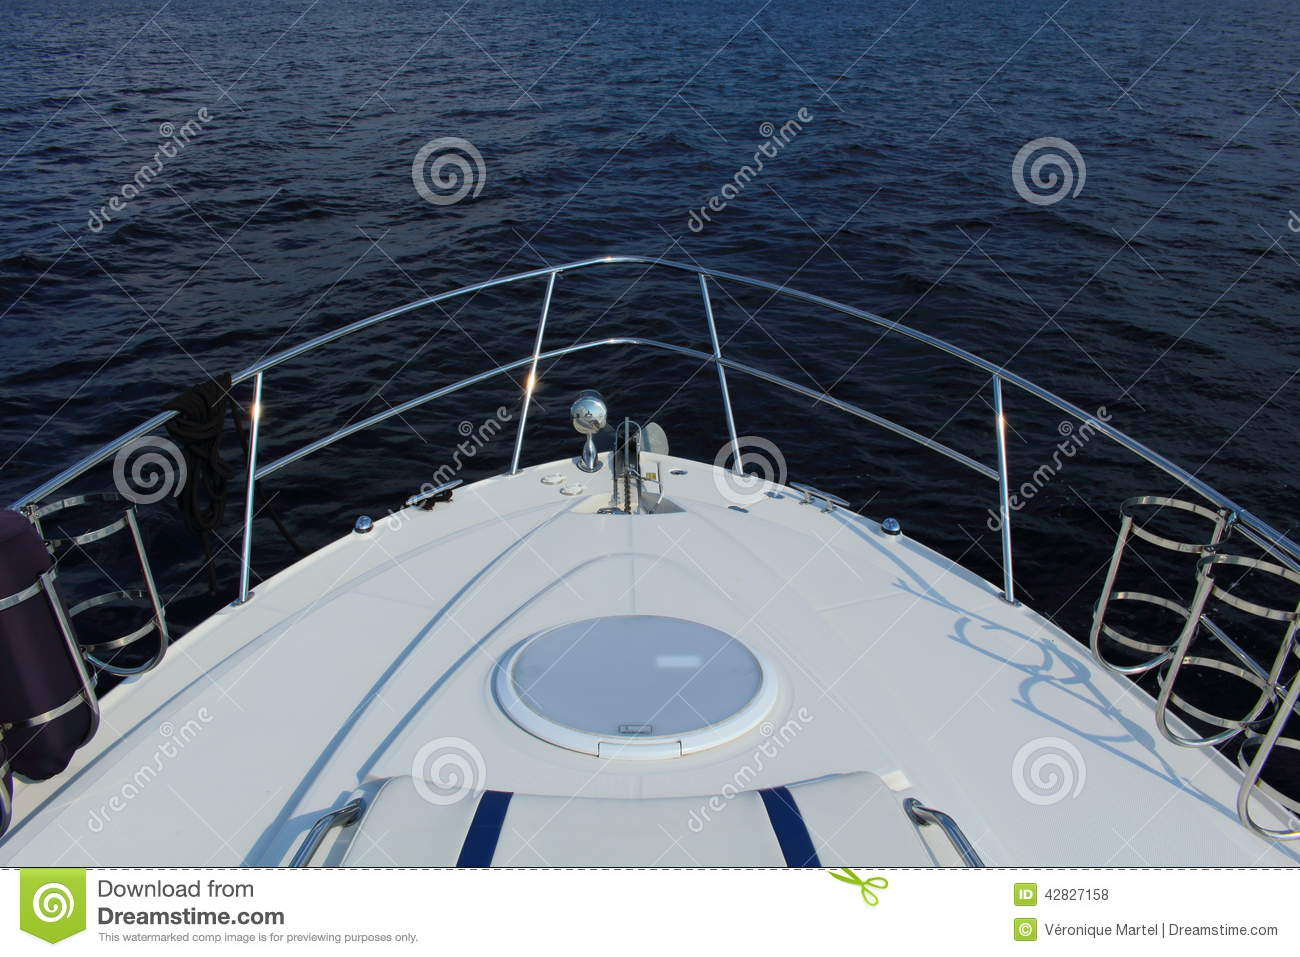 Bow Of A Boat >> Bow Of A Boat In Top View Stock Photo Image Of Jean 42827158